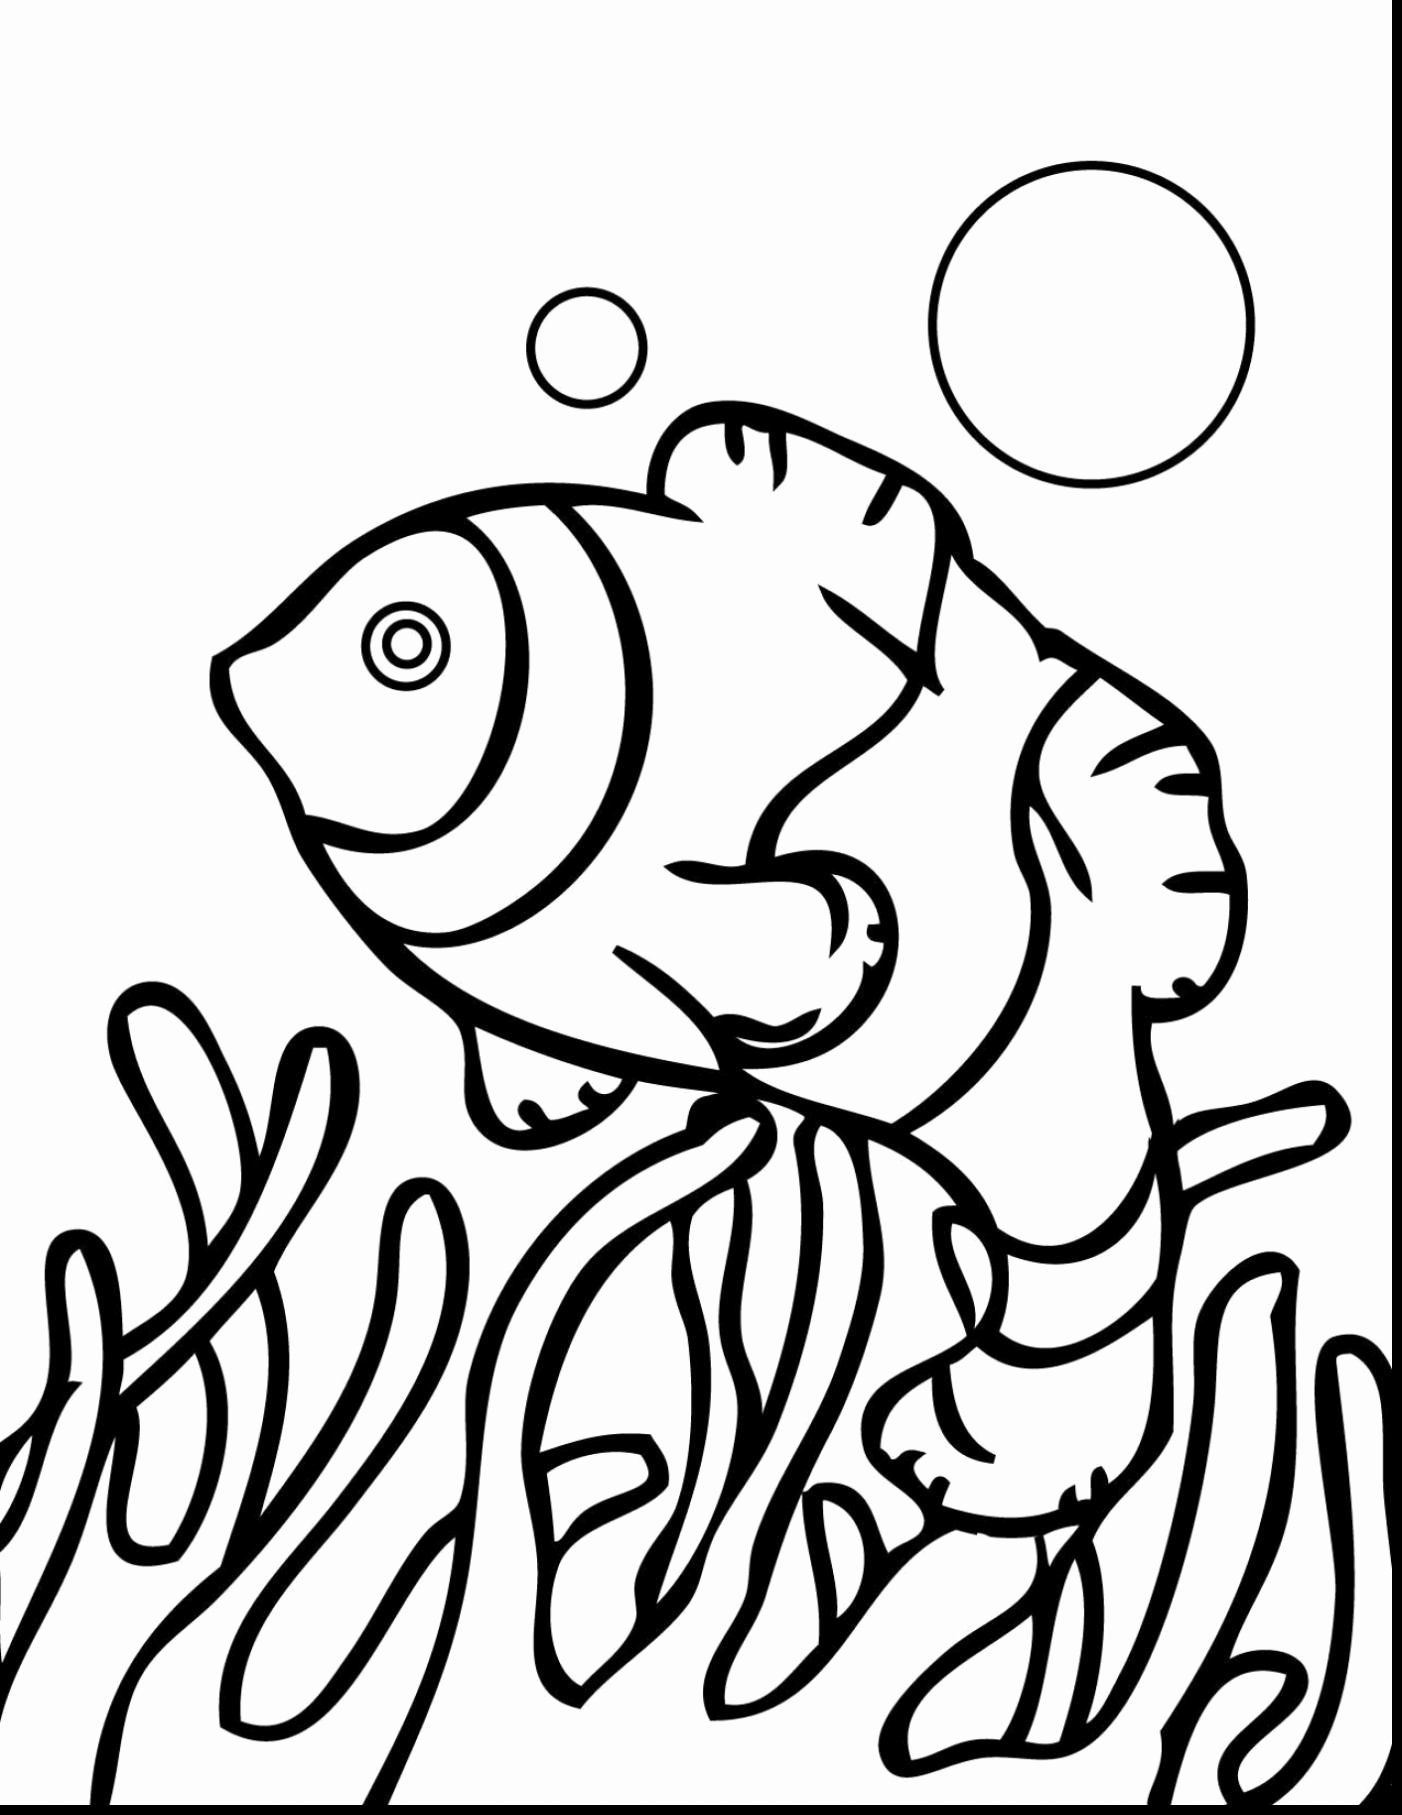 28 Coral Reef Coloring Page In